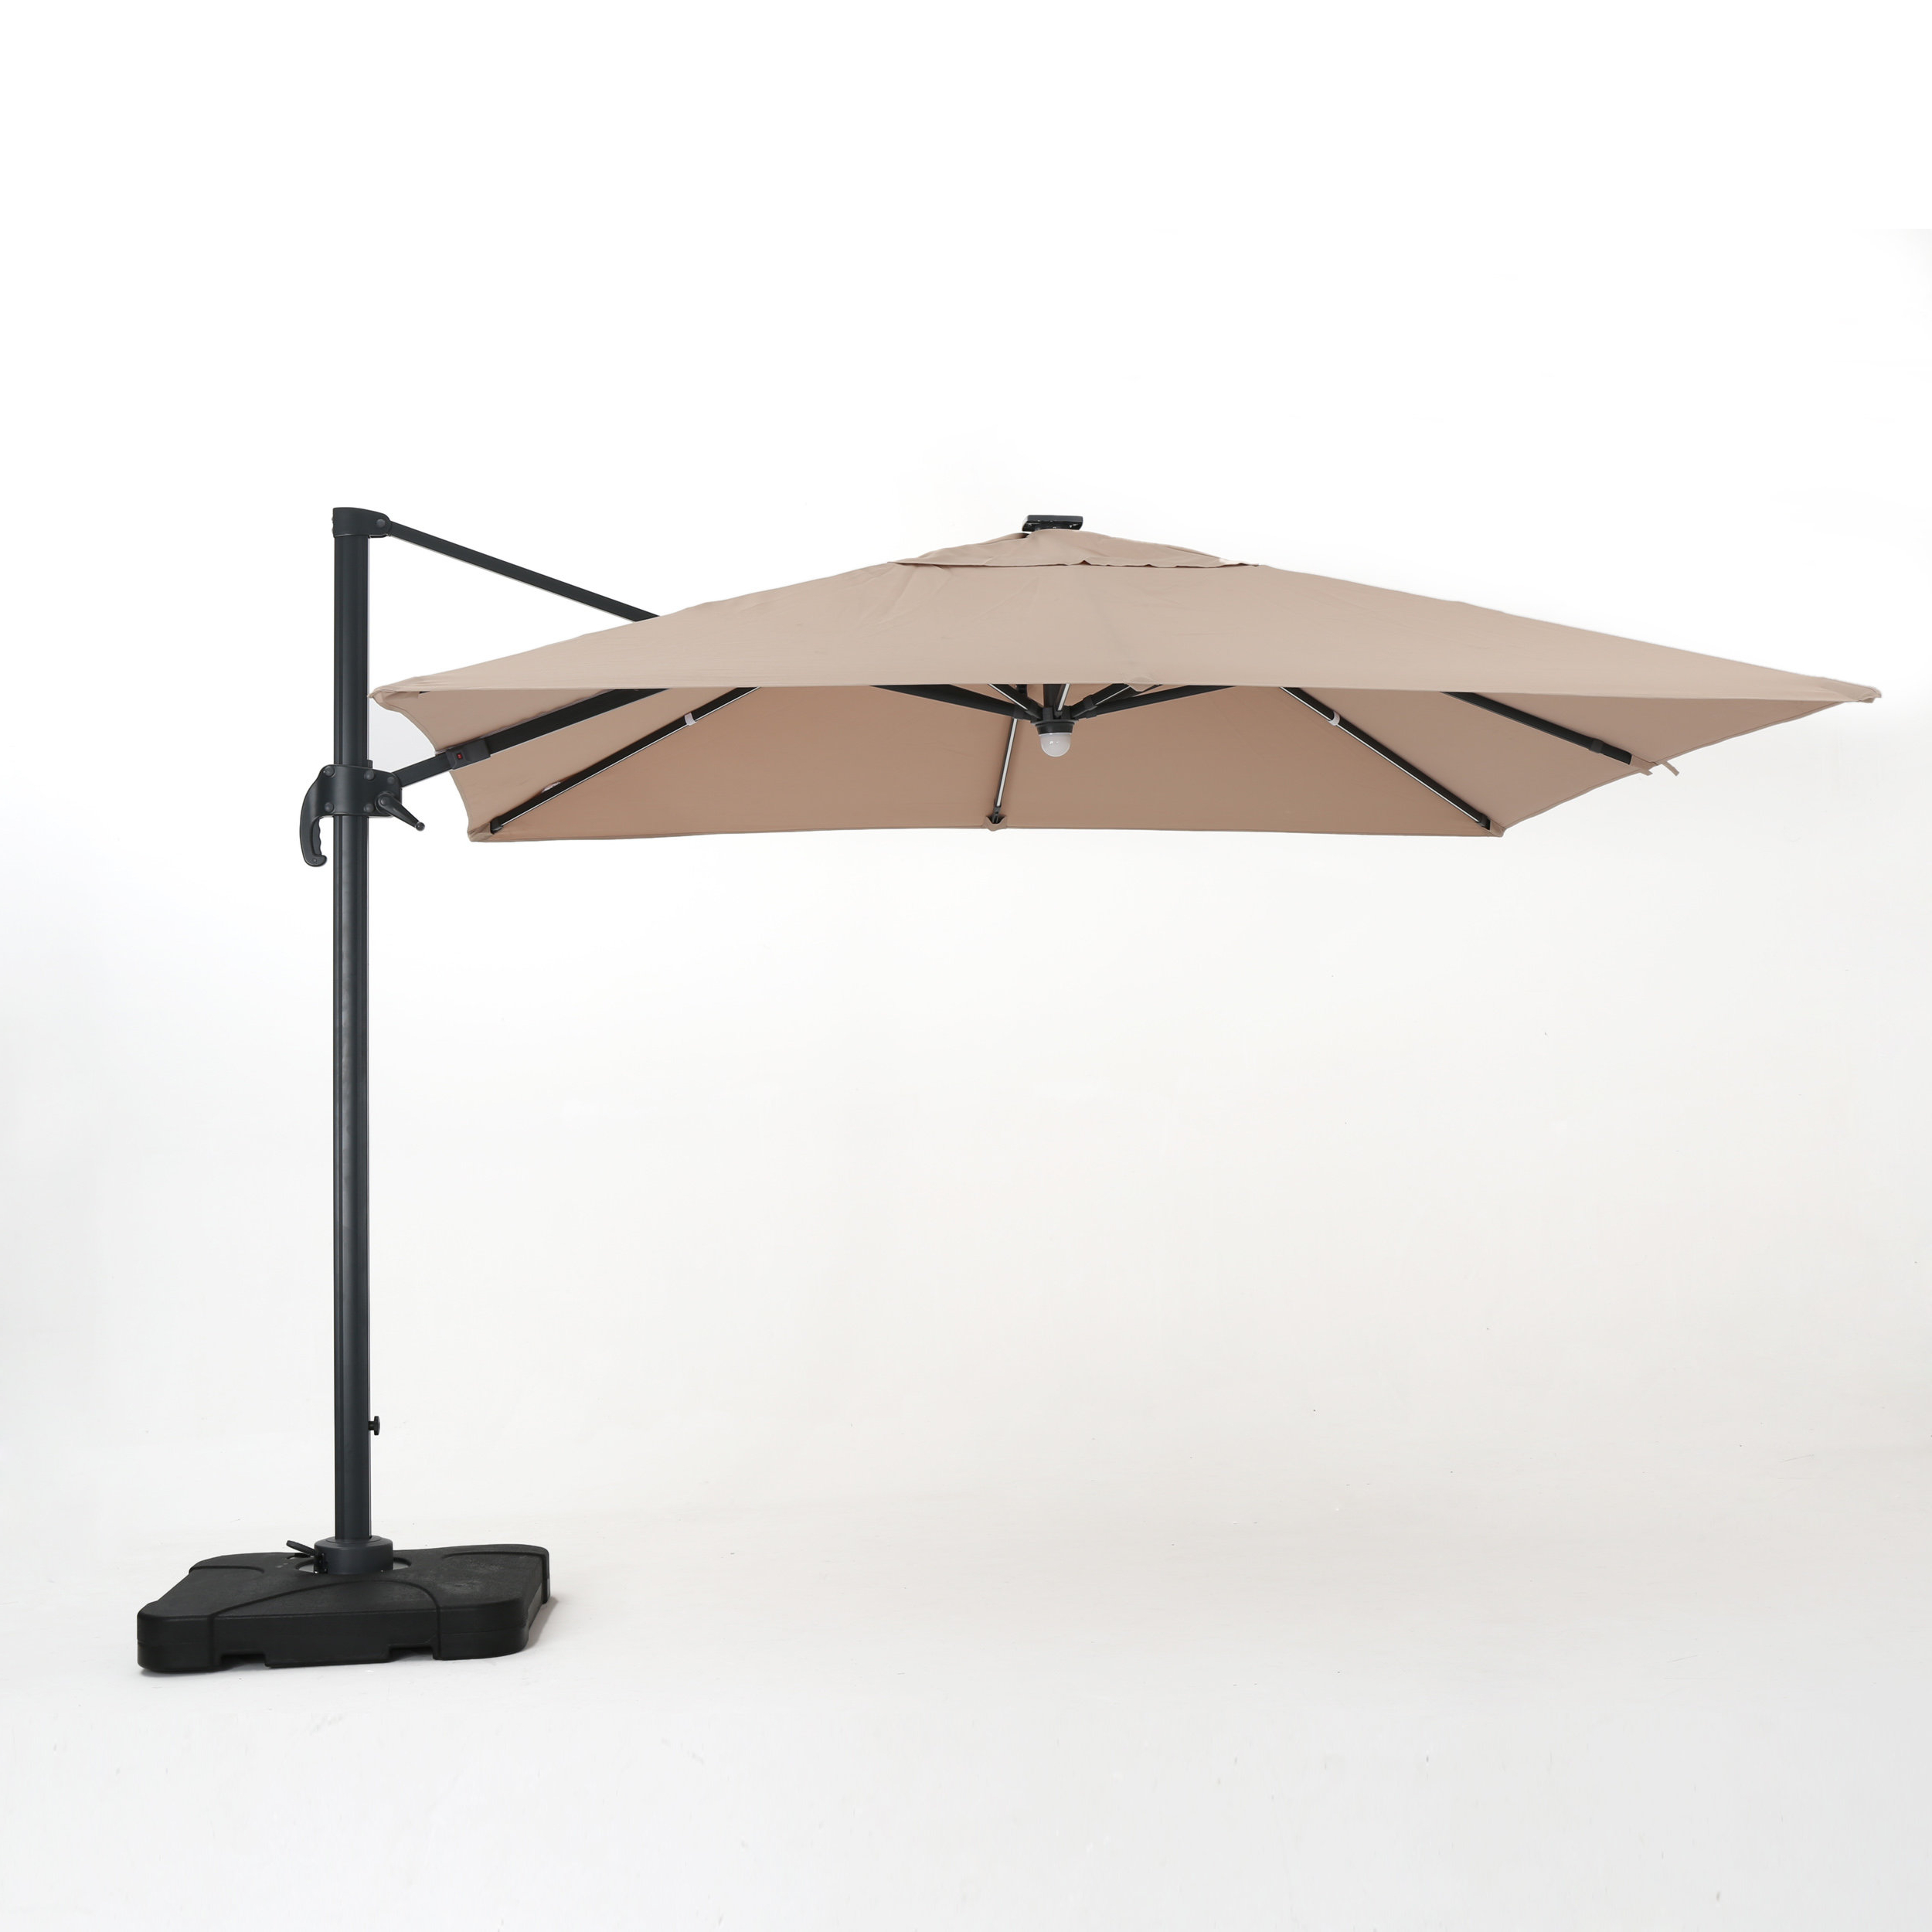 Krystal Square Cantilever Sunbrella Umbrellas Intended For Most Popular Jendayi Square Cantilever Umbrella (Gallery 1 of 20)